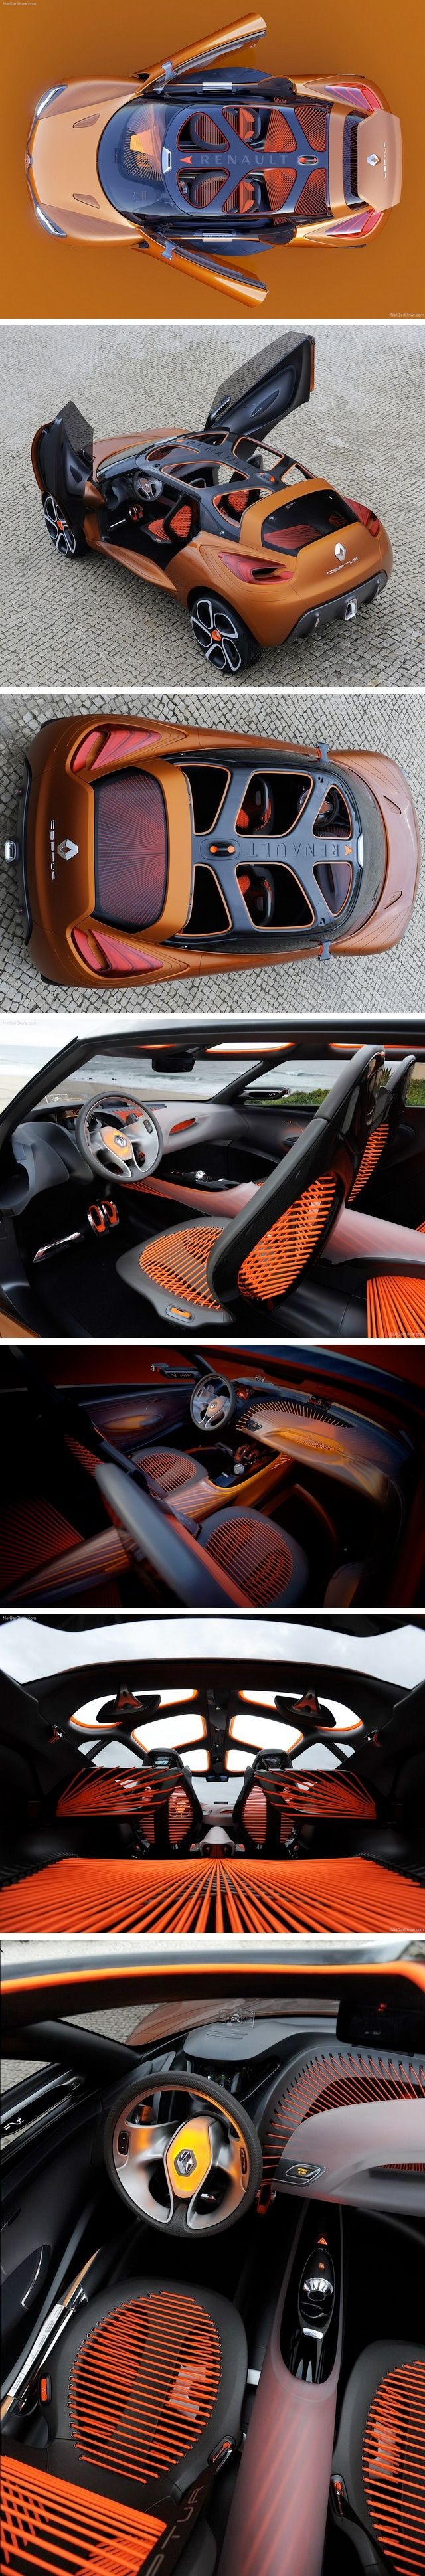 Renault Captur Concept. ...Like going fast? Call or click: 1-877-INFRACTION.com (877-463-7228) for Aggressive Traffic Ticket, DUI and Suspended License Defense